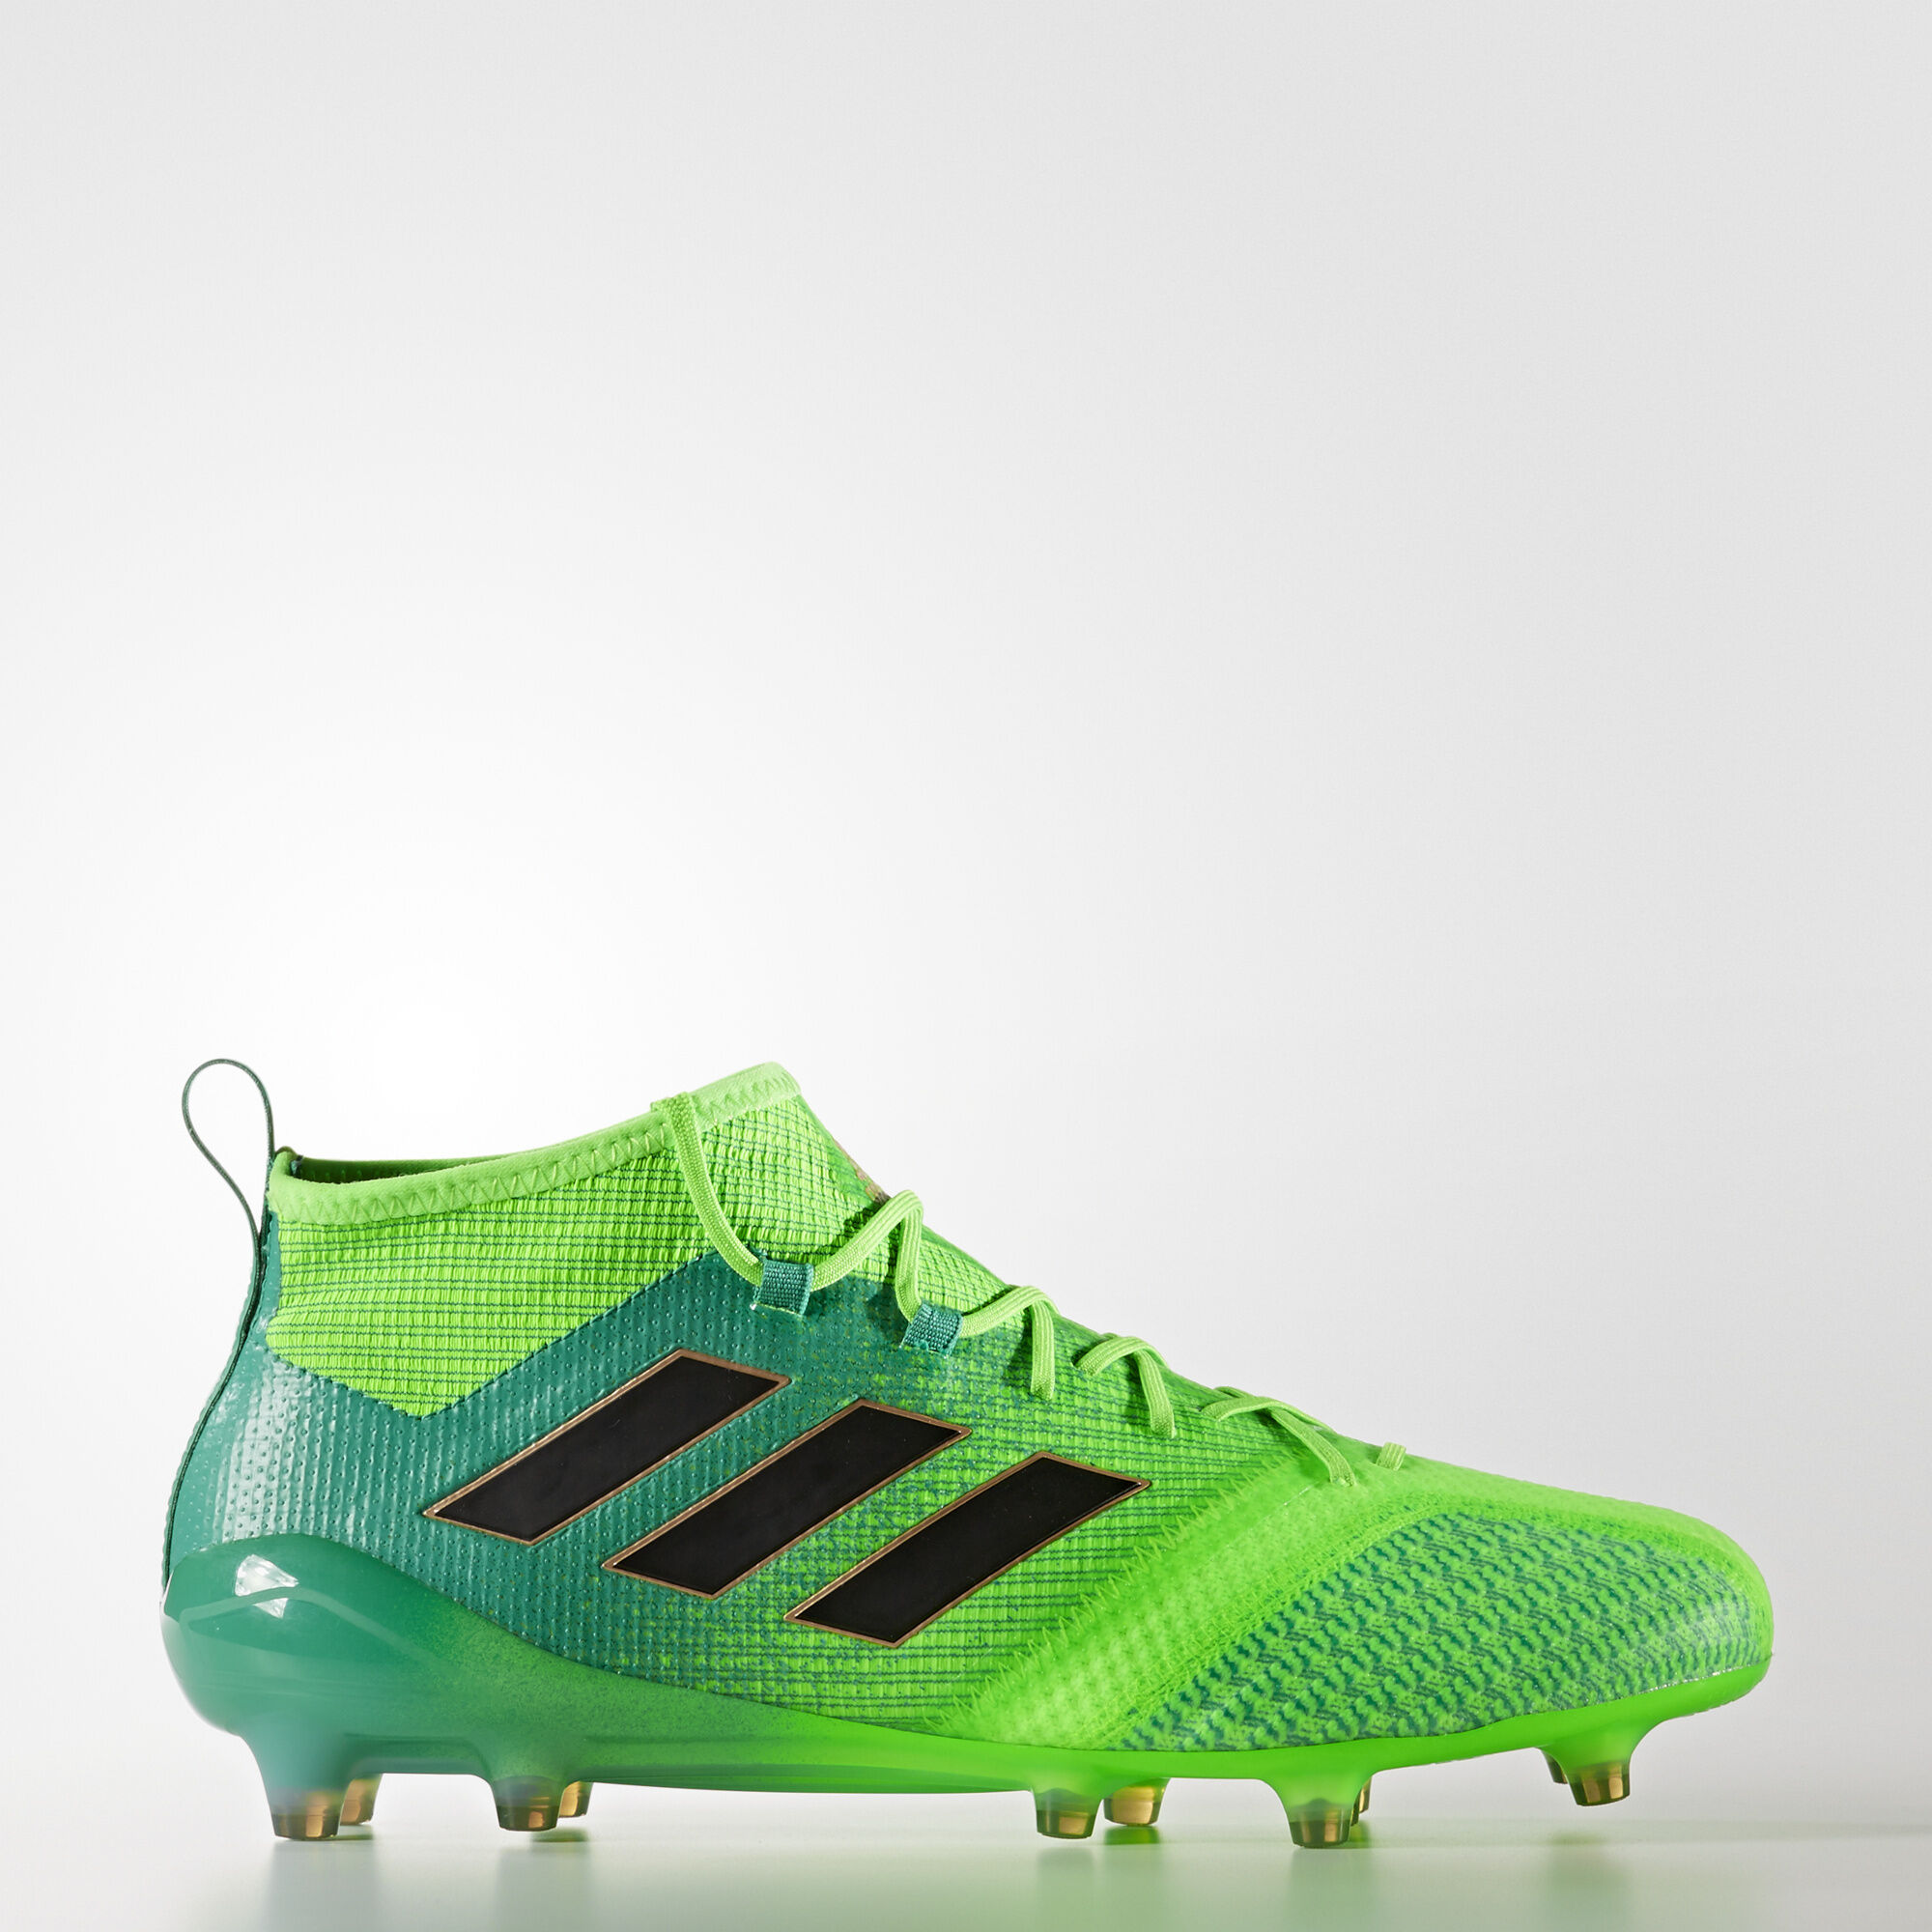 new adidas soccer cleats coming out